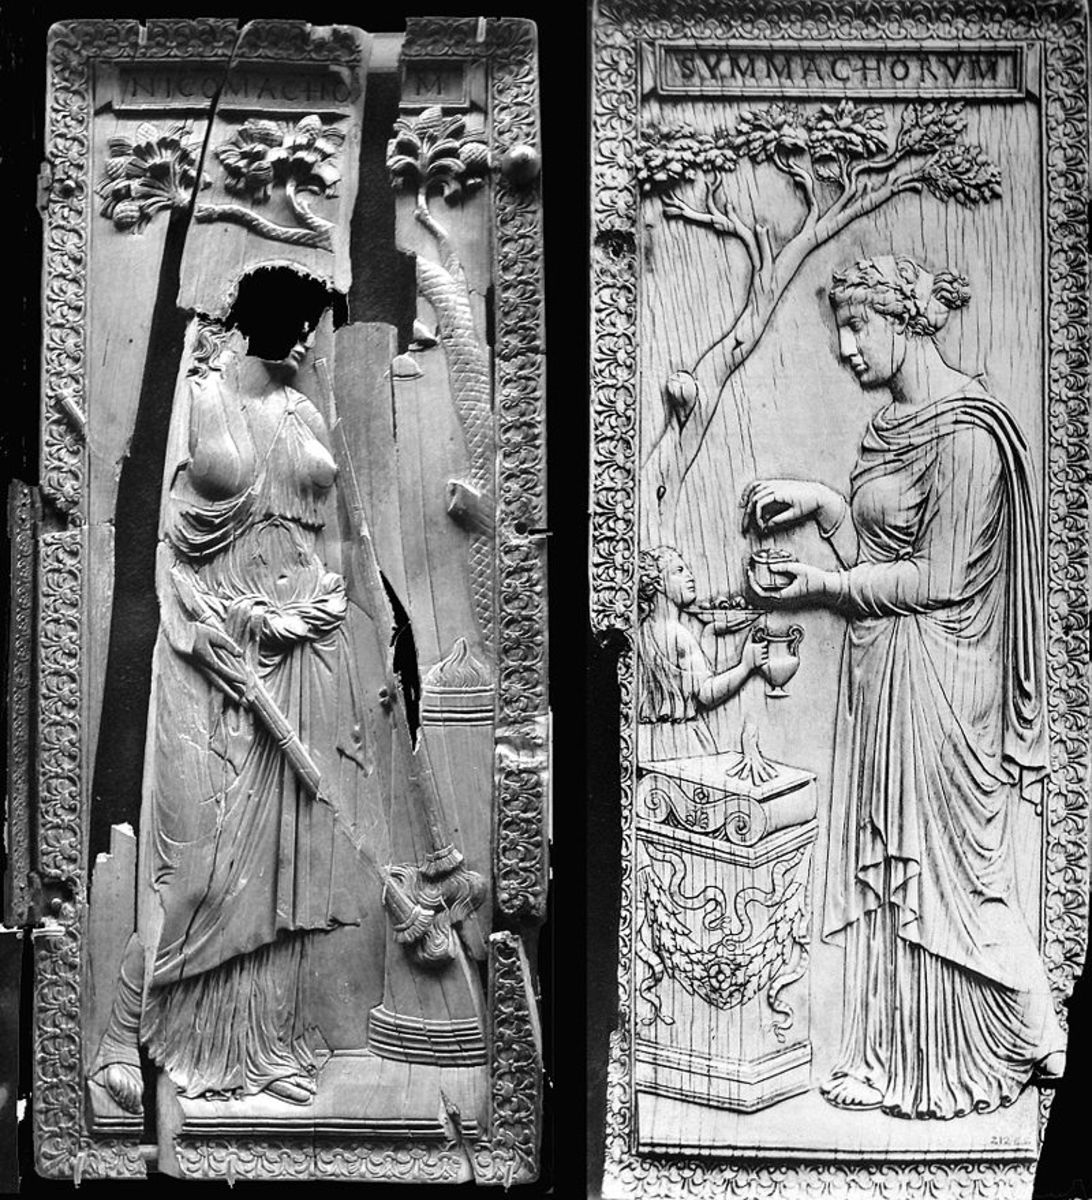 Figure 5: Woman sacrificing at an altar, right leaf of the diptych of the Nicomachi and the Symmachi